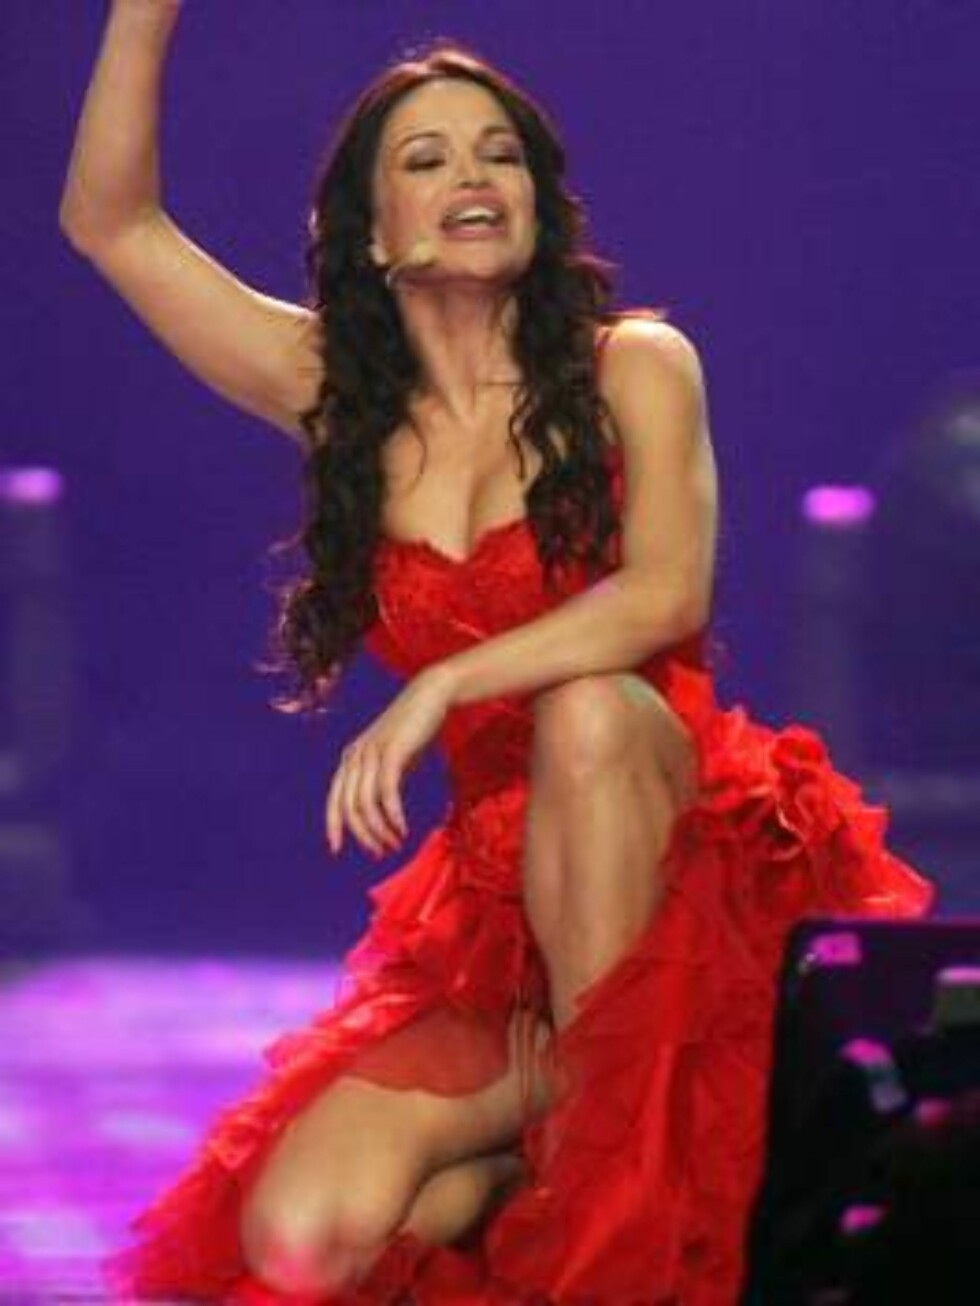 Singer Severina performs for Croatia with the song 'Moja Stikla' during the dress rehearsal final of the Eurovision at the Indoor Olympic stadium in Athens on Friday, May 19, 2006. Organizers estimate more than 100 million TV viewers will watch Saturday's Foto: AP